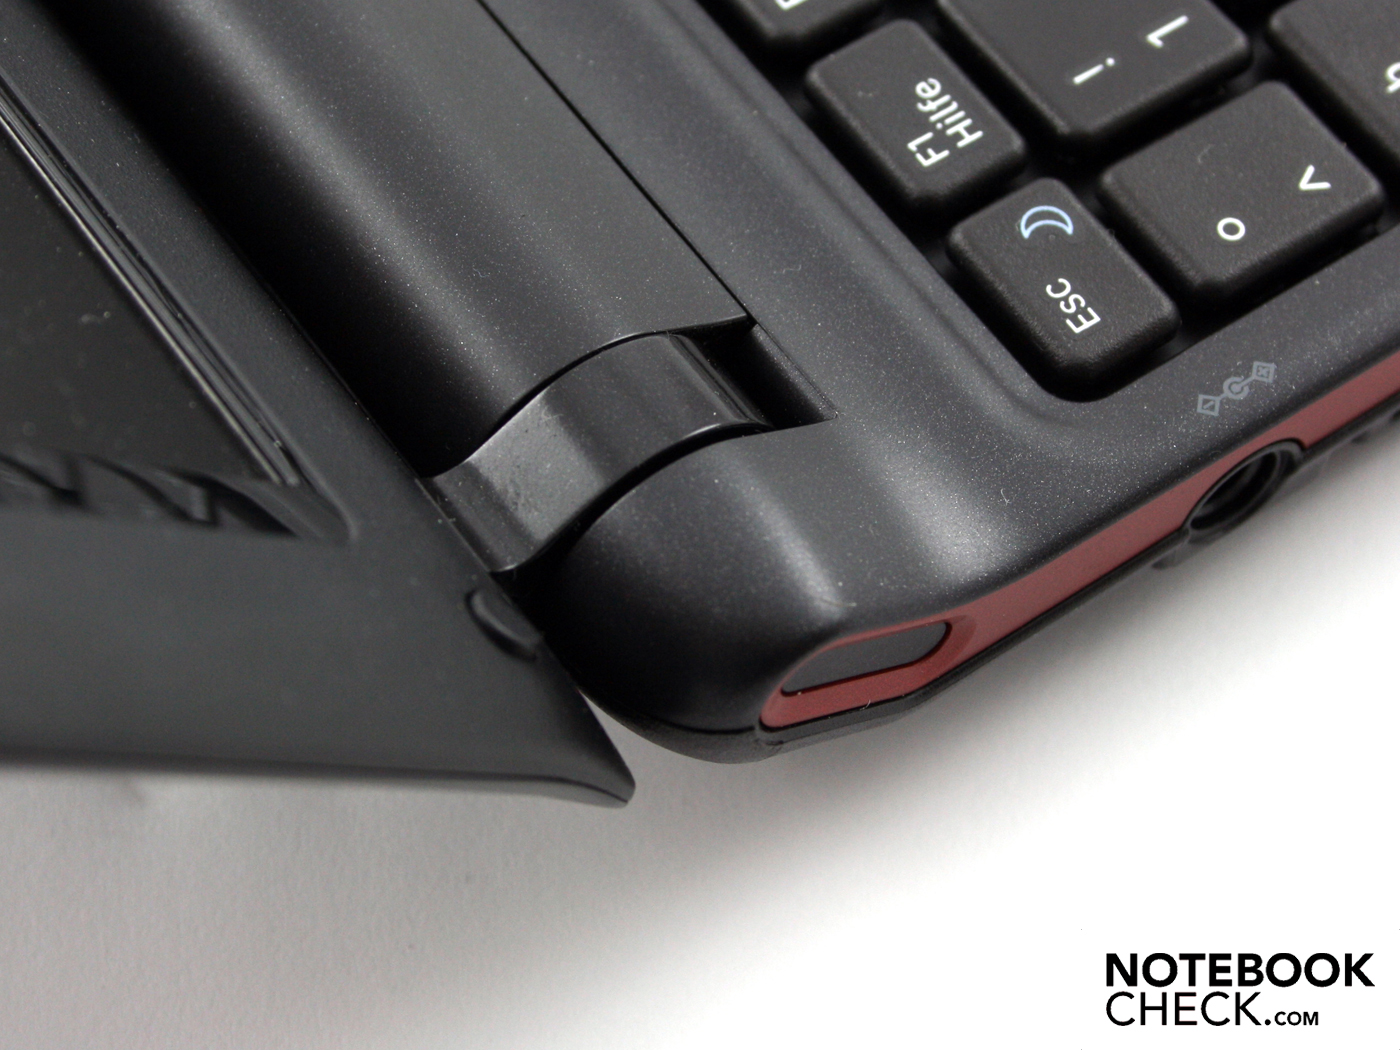 NP N150 SAMSUNG DRIVER FOR WINDOWS 10